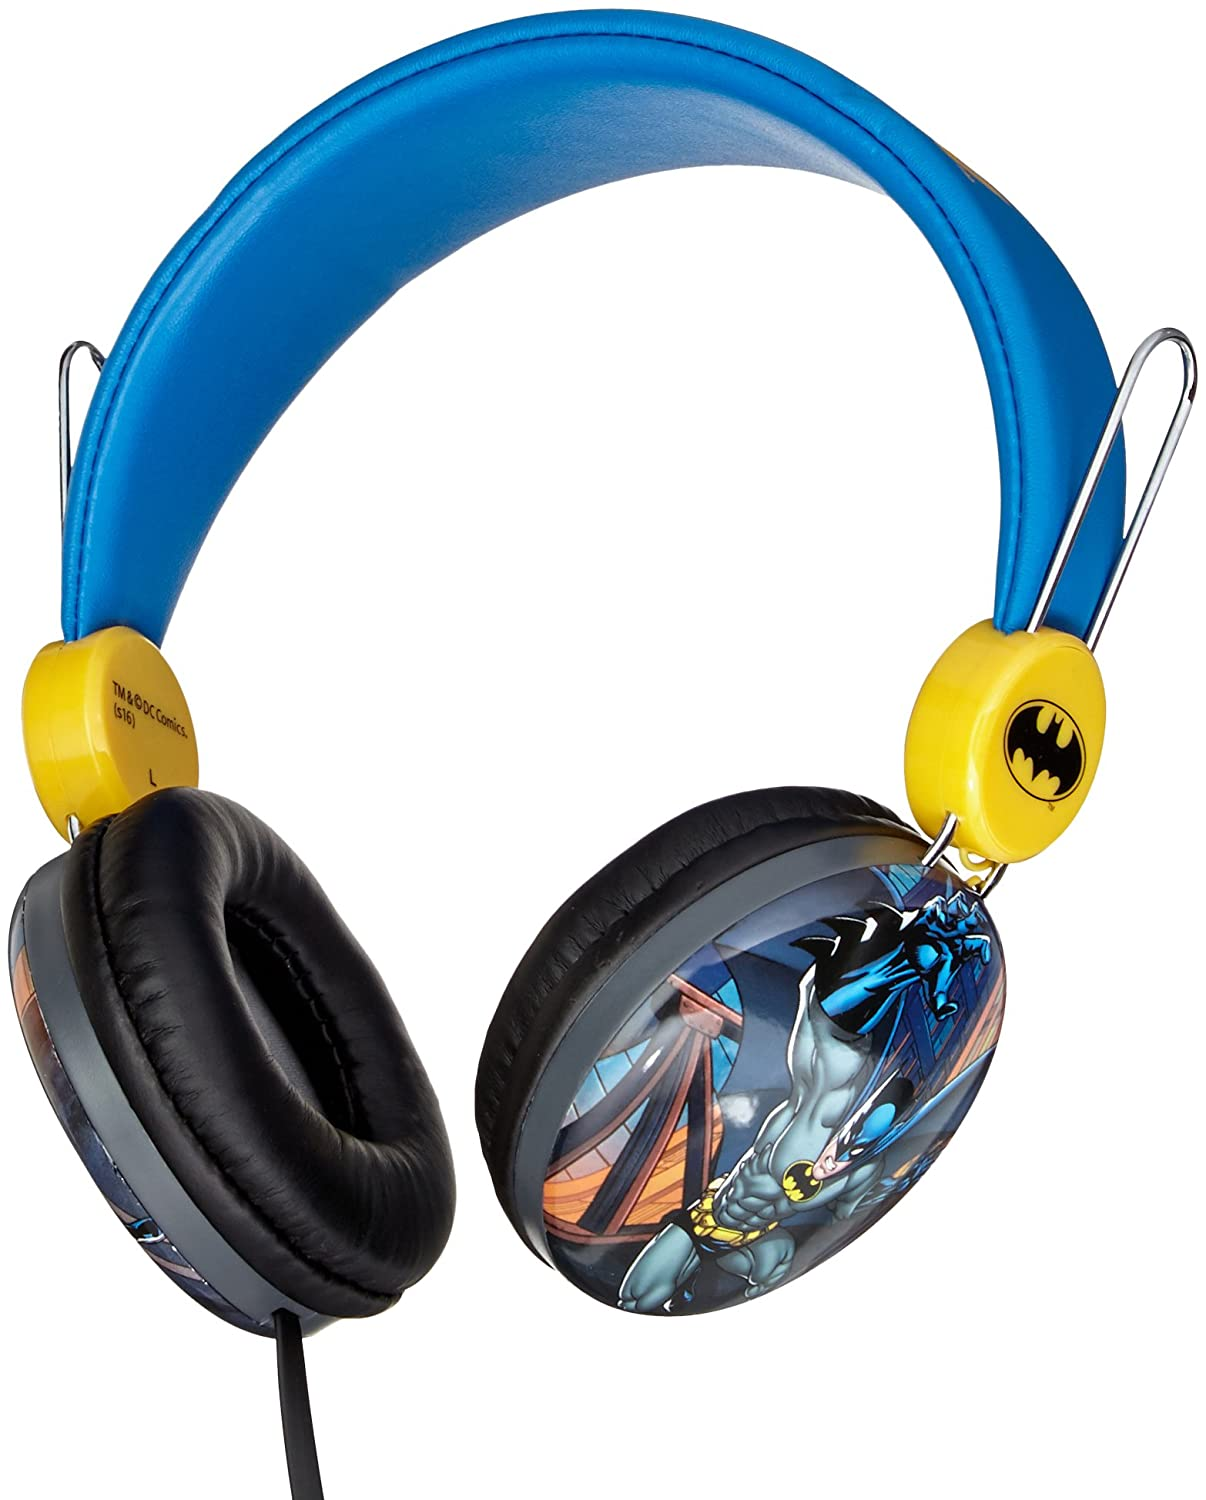 Batman Over The Ear Kids Safe Headphones by Sakar HP1-01082 Sound, Compatible with All IpodIphoneIpad, Comfortable Ear Cushions and Headphones, 1 Year Manufacturer Warranty, Blue